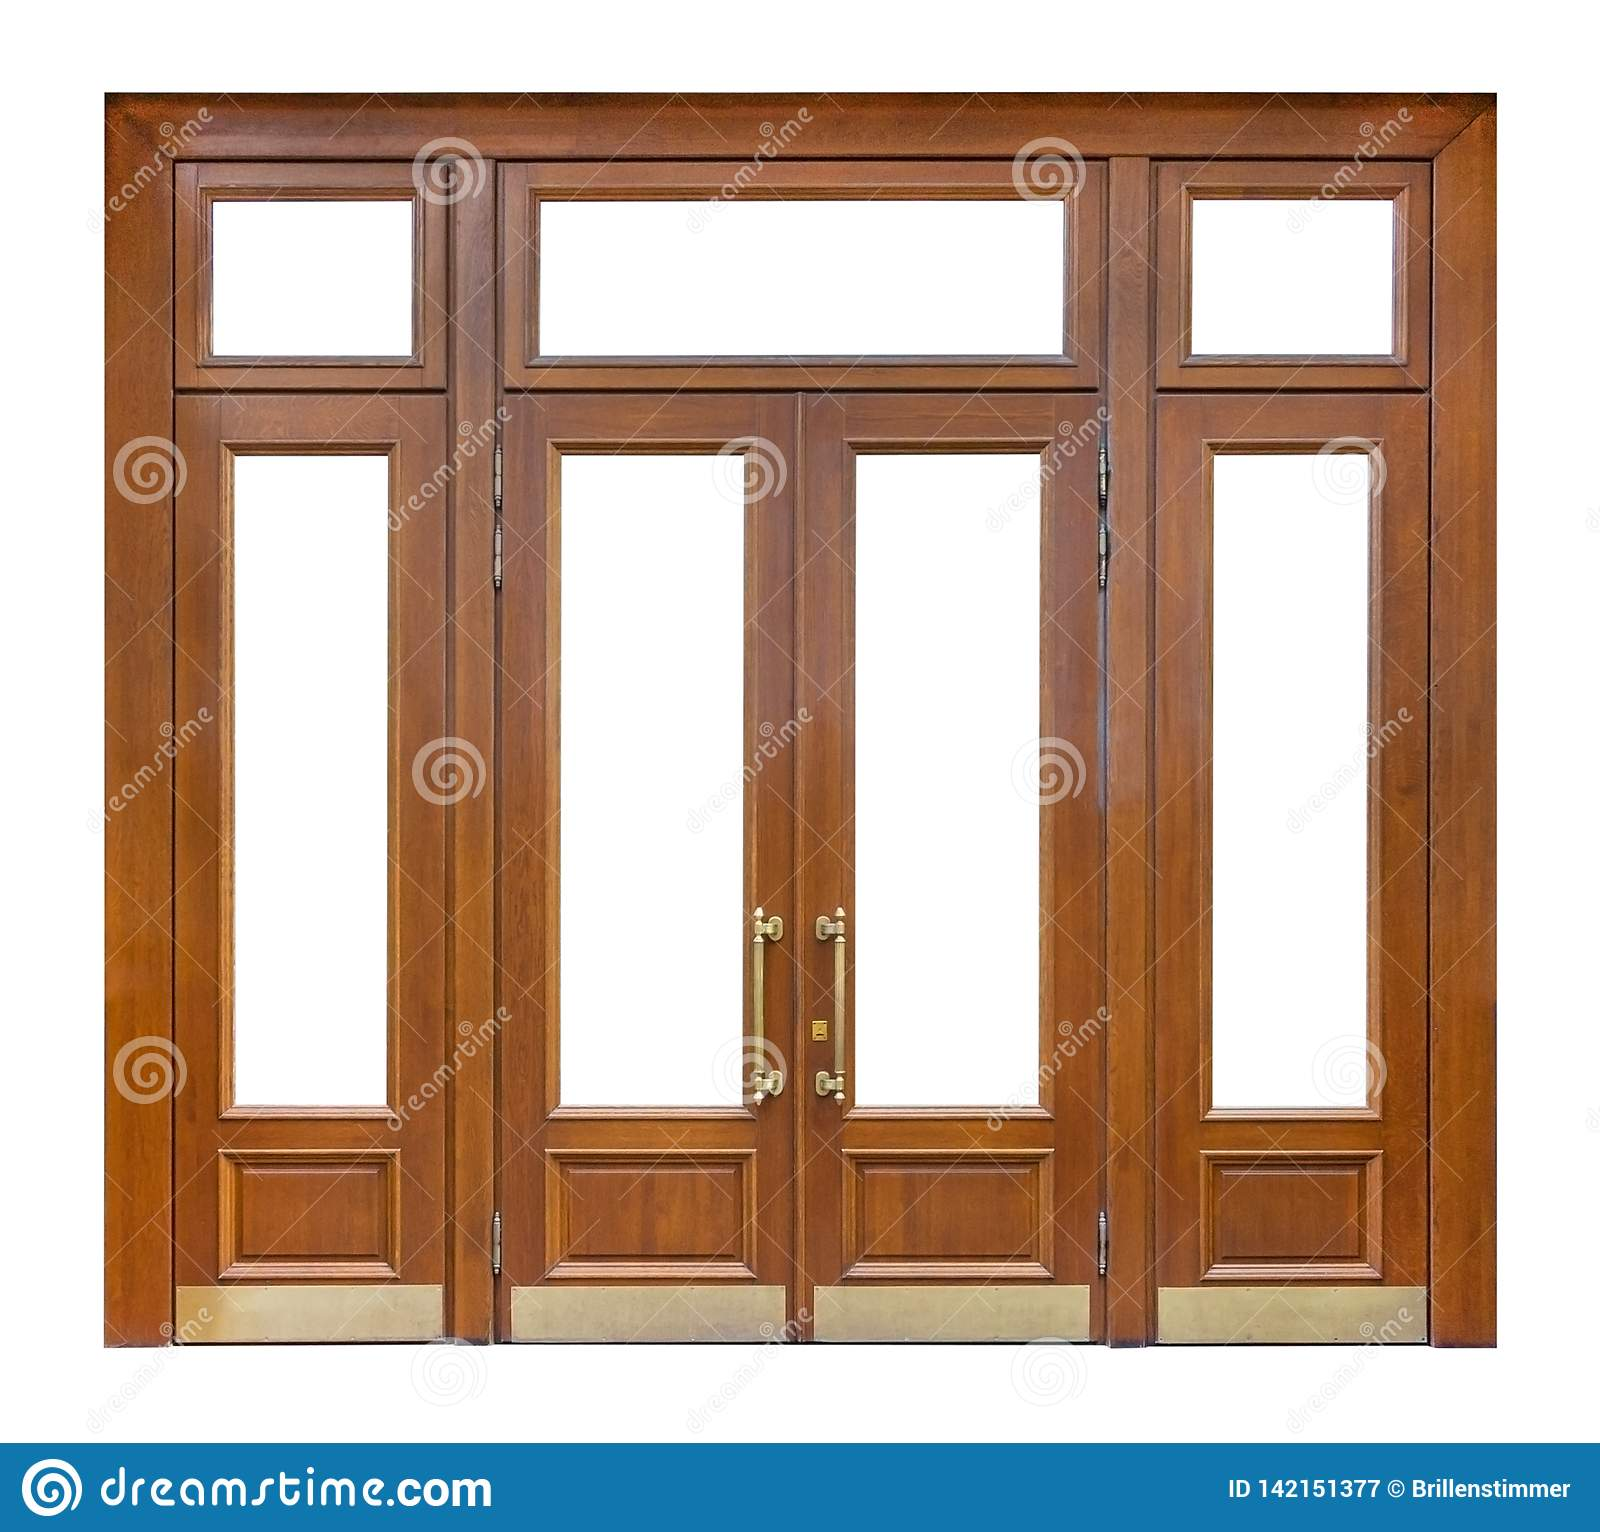 Wooden Entrance With Cutout Windows And Double Door With Long Gilded Knobs Isolated On White Background Design Element Stock Image Image Of Casing Frame 142151377,Italia Ricci Emily Rose Designated Survivor